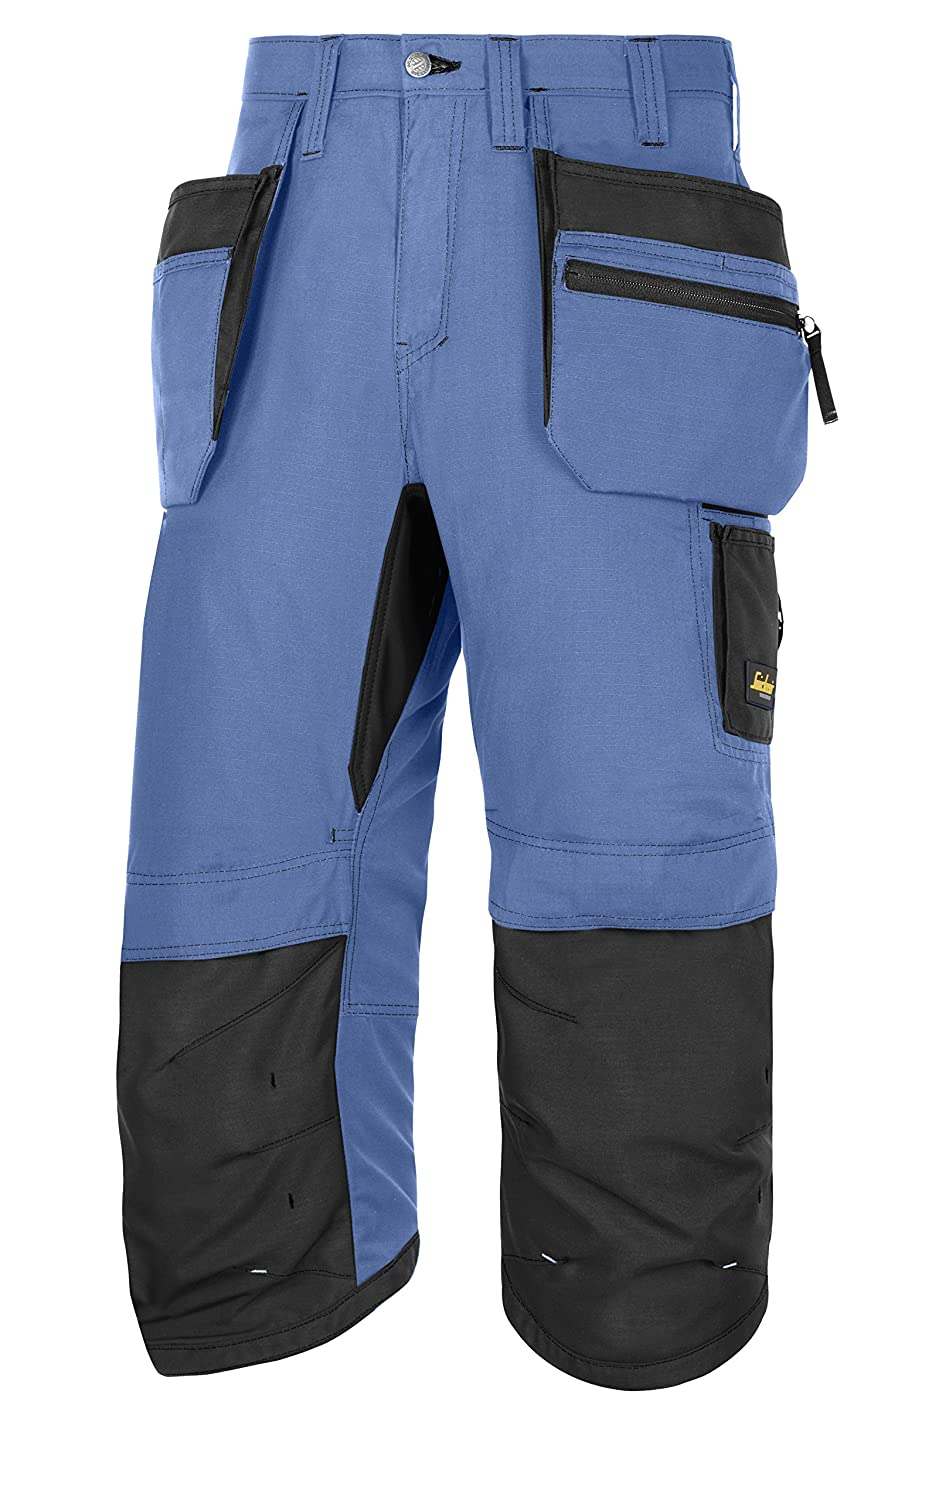 Snickers 61039504046 Size 46'LiteWork, 37.5' Work Pirate Trousers with Pockets - Navy Blue/Black 37.5 Work Pirate Trousers with Pockets - Navy Blue/Black